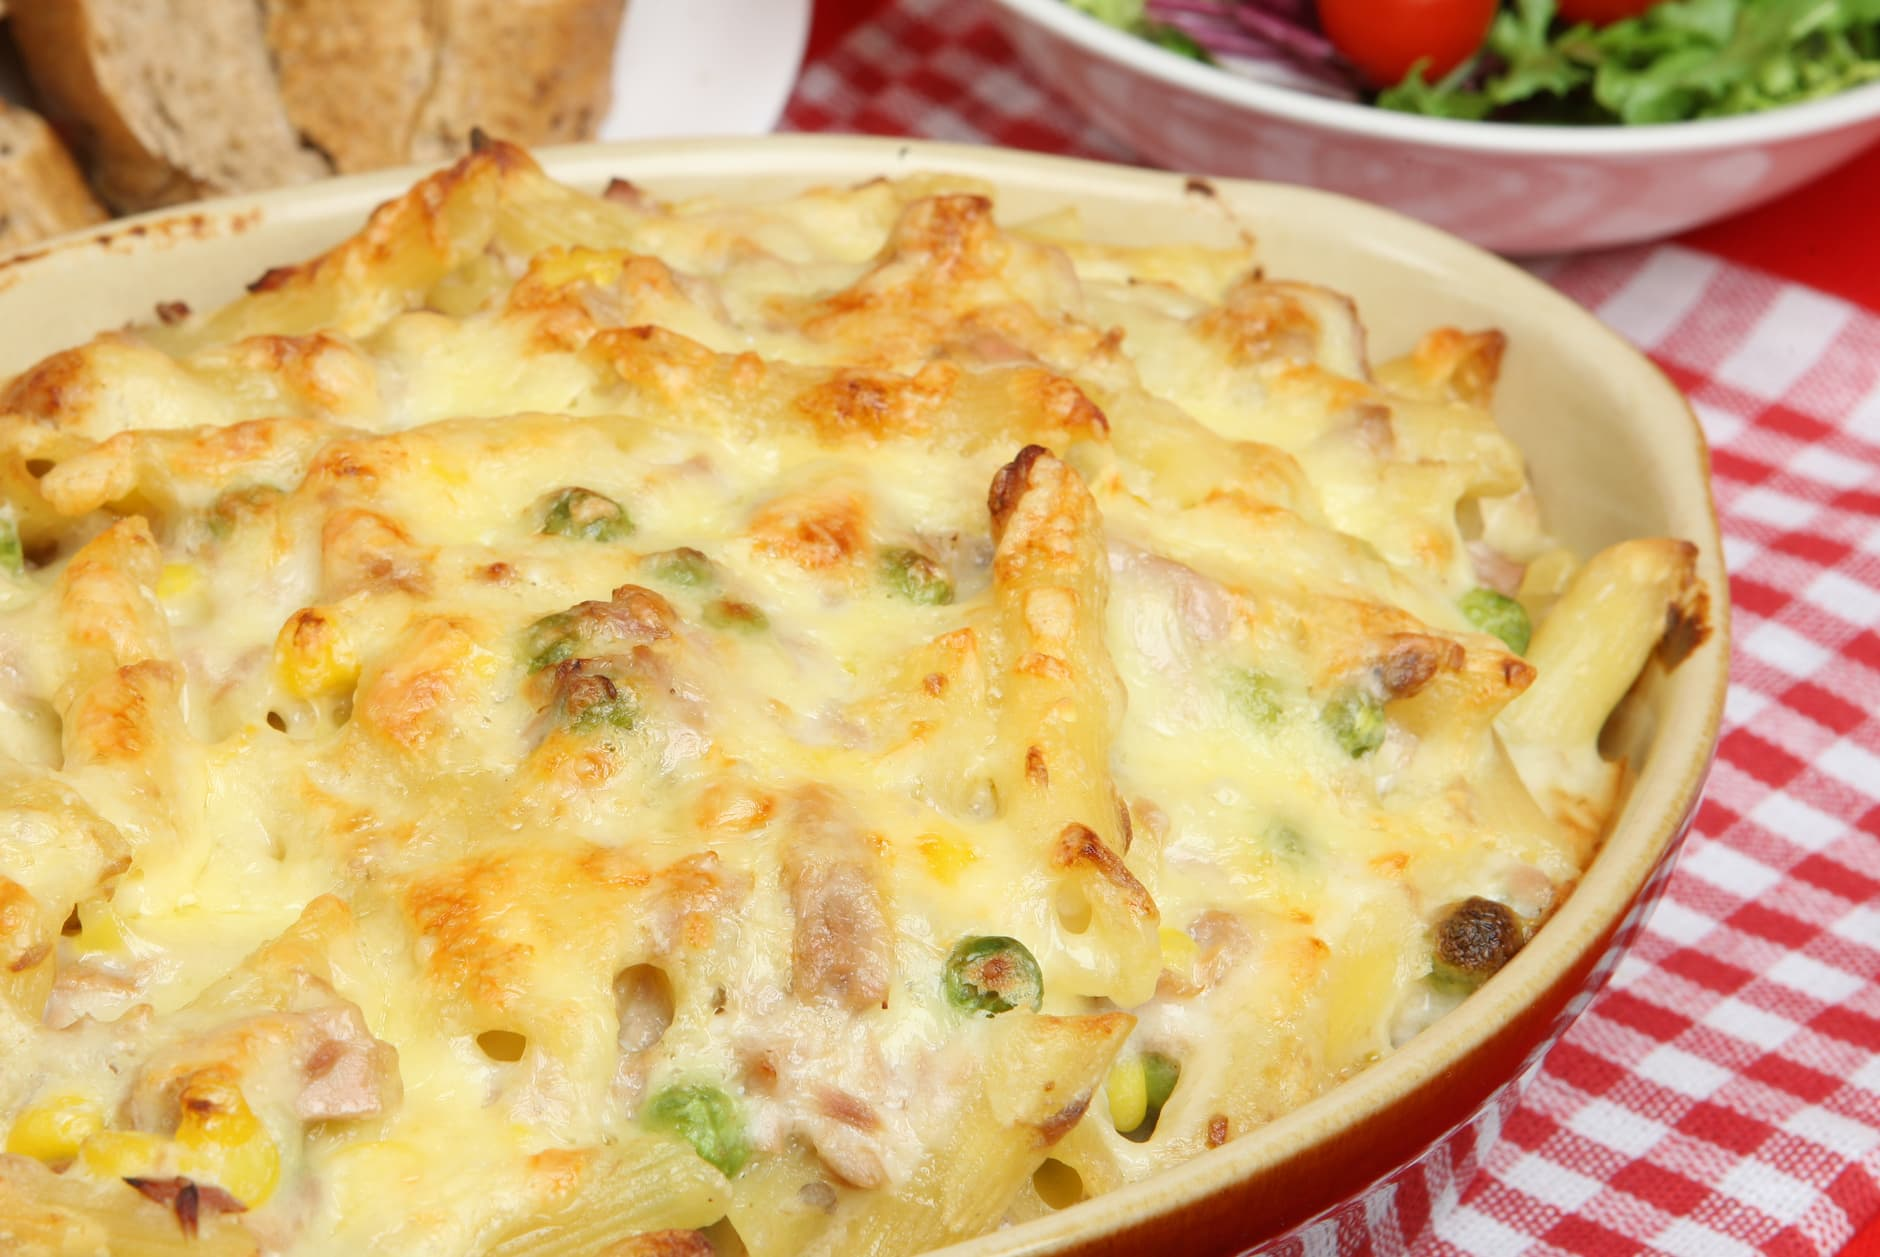 Tuna and pasta casserole on a table covered in melted cheese